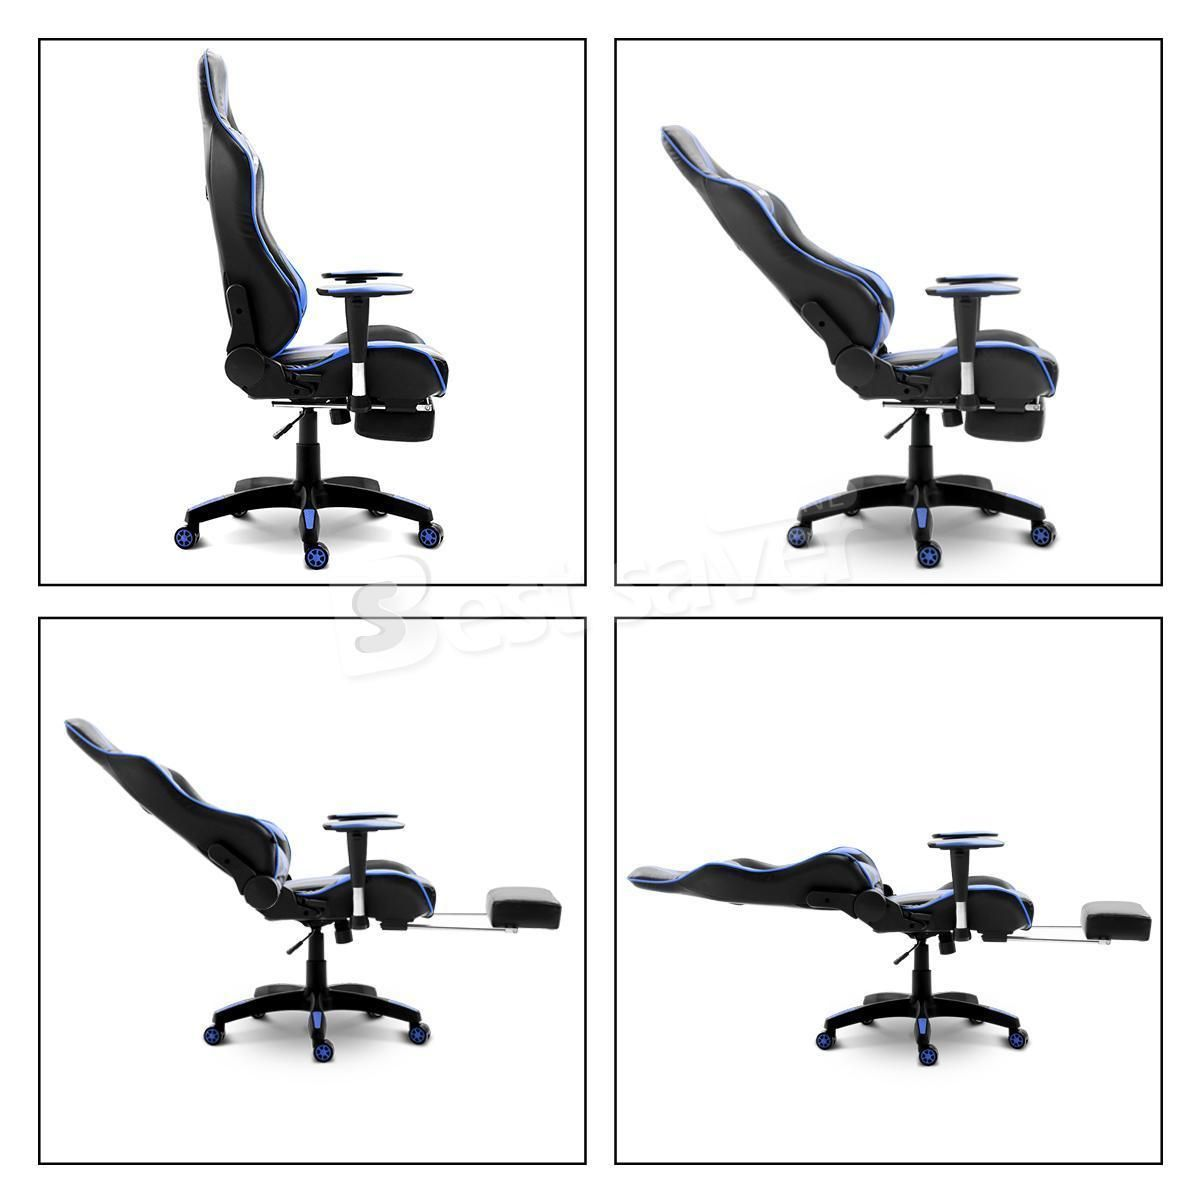 Remarkable Neader Executive Racing Gaming Chair High Back W Footrest Gmtry Best Dining Table And Chair Ideas Images Gmtryco